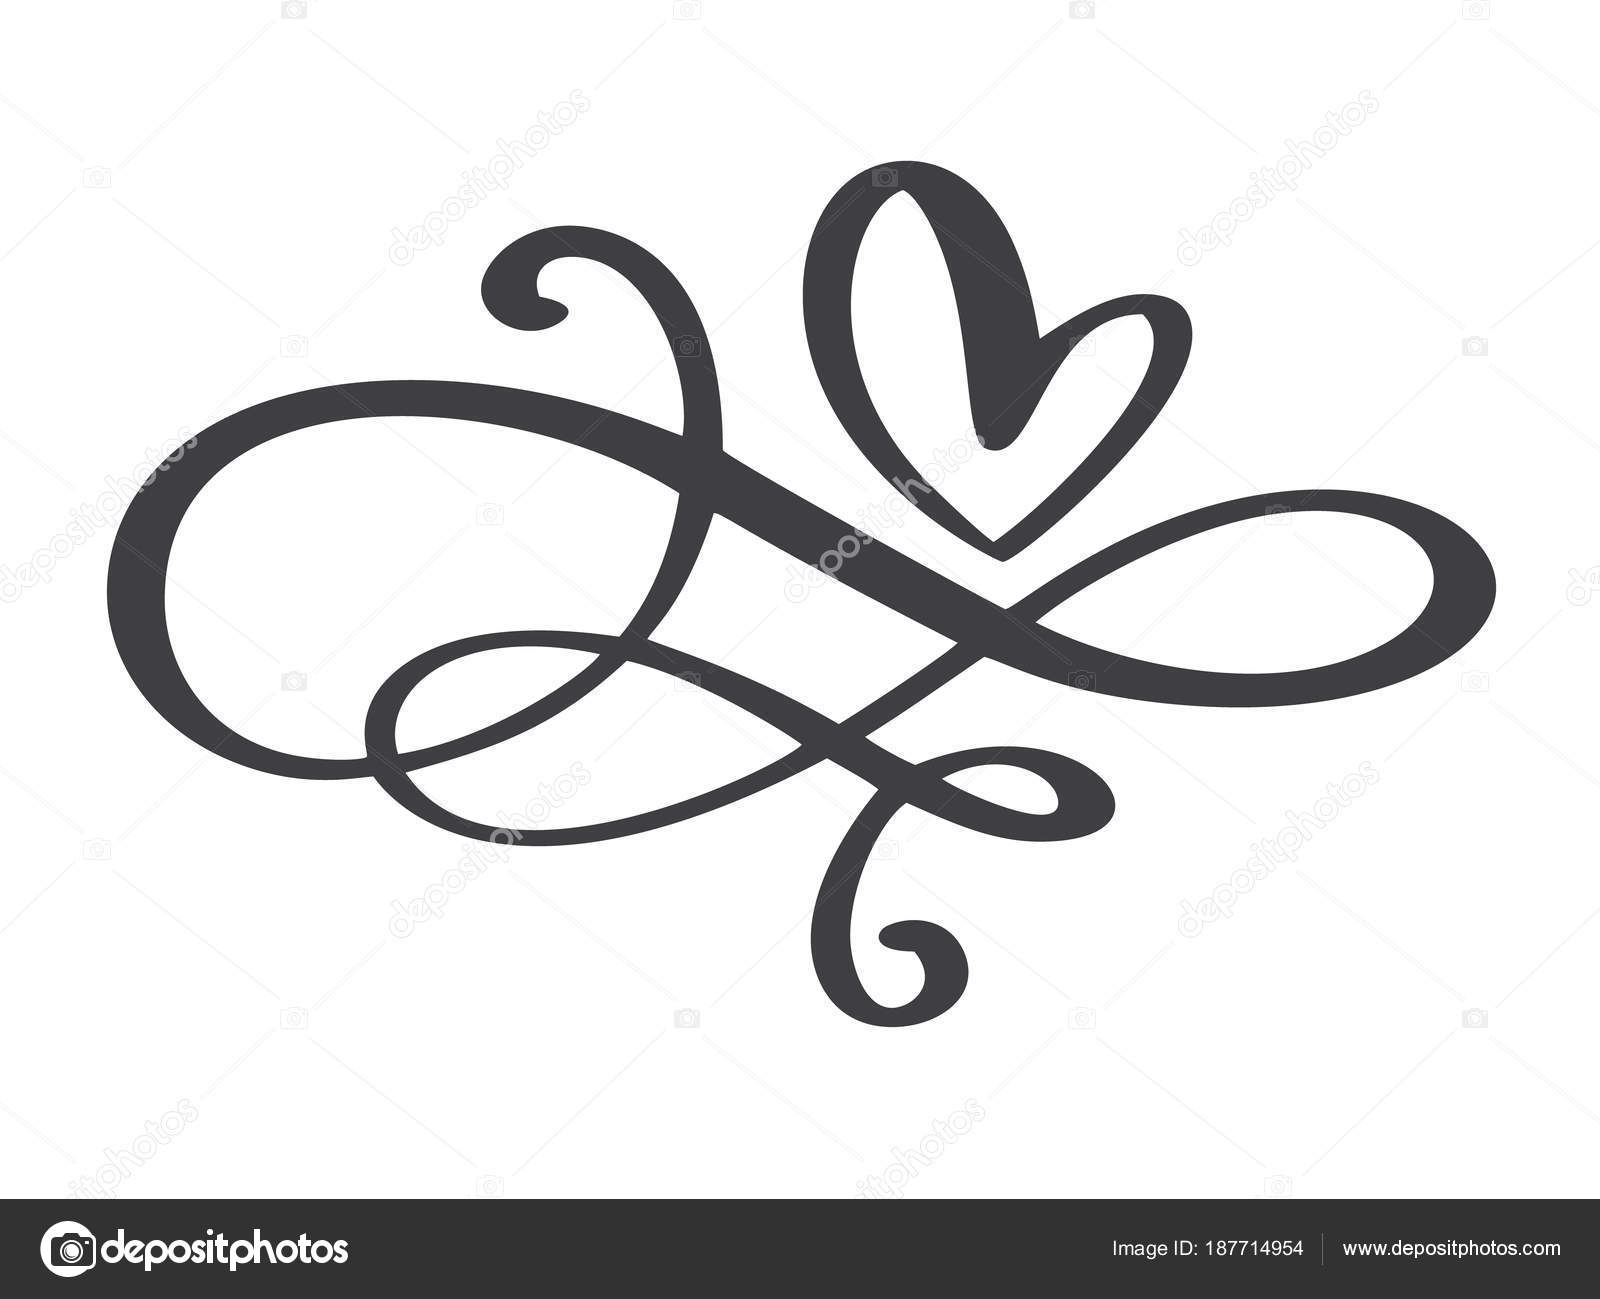 Heart Love Flourish Sign Forever Infinity Romantic Symbol